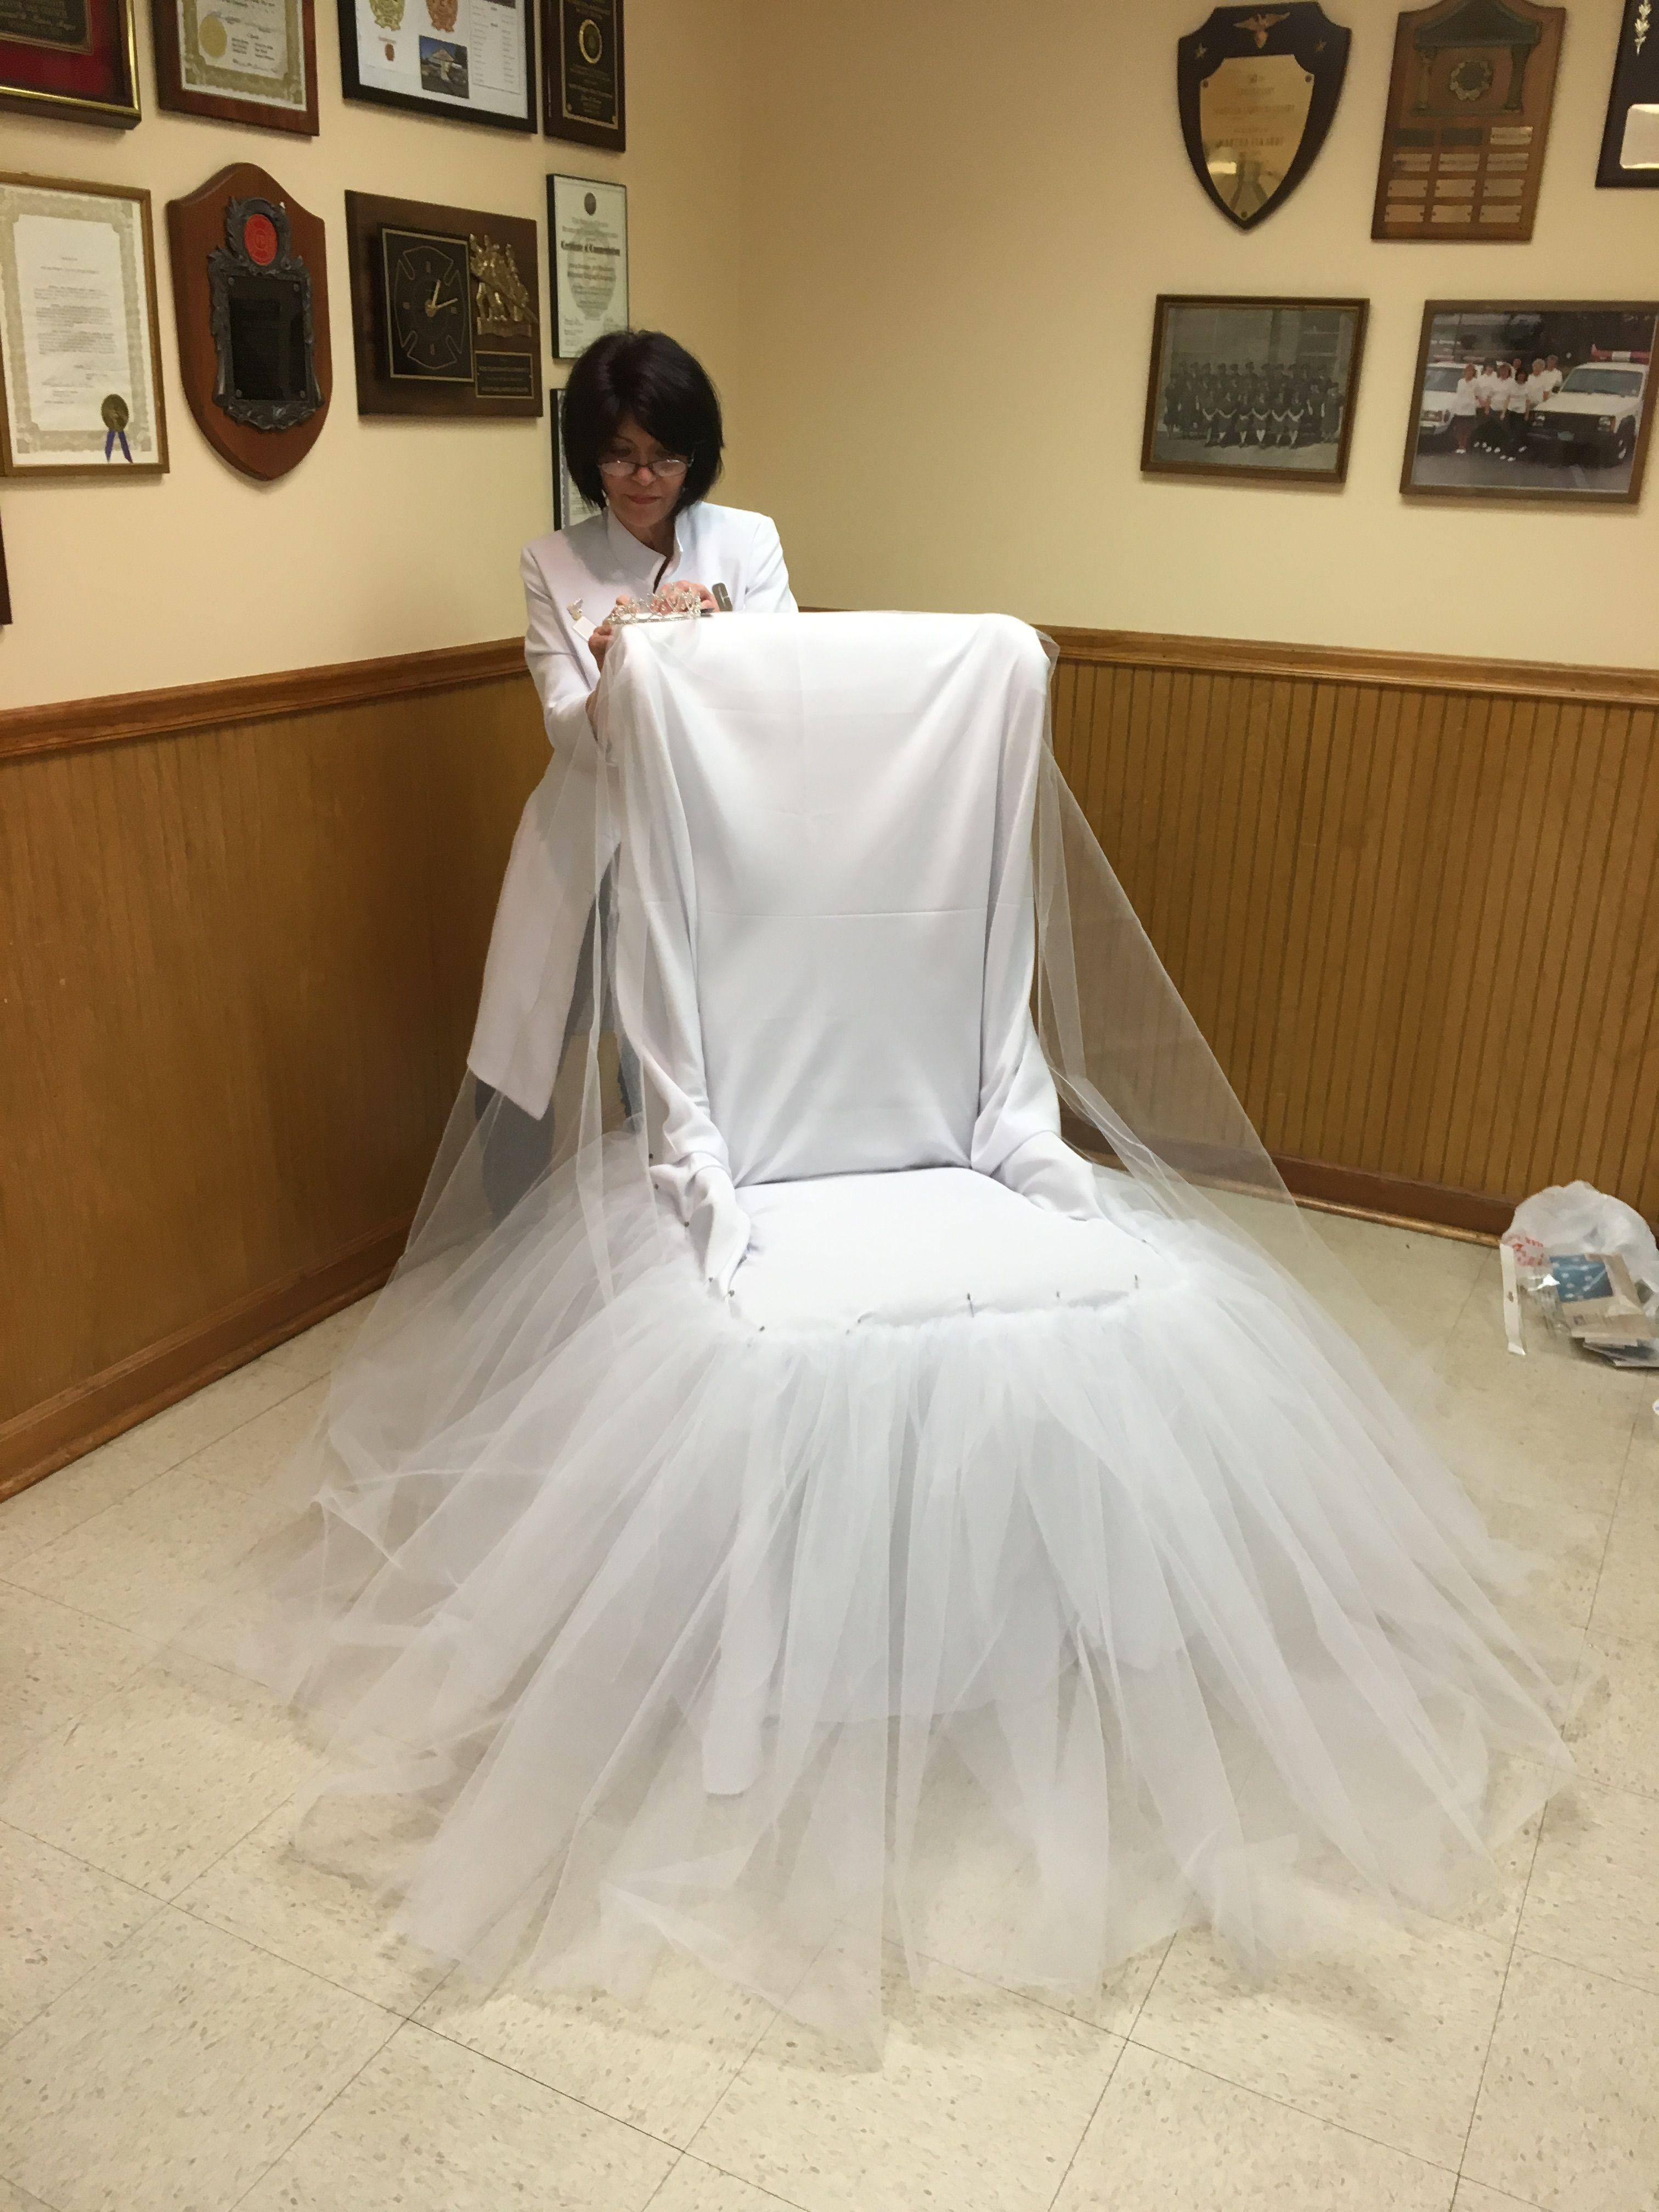 Bridal Shower Chair Perfect For Opening Gifts Chair Mimics The Bridal Gown Co Bridal Shower Bride Chair Bridal Shower Chair Bridal Shower Chair Decoration